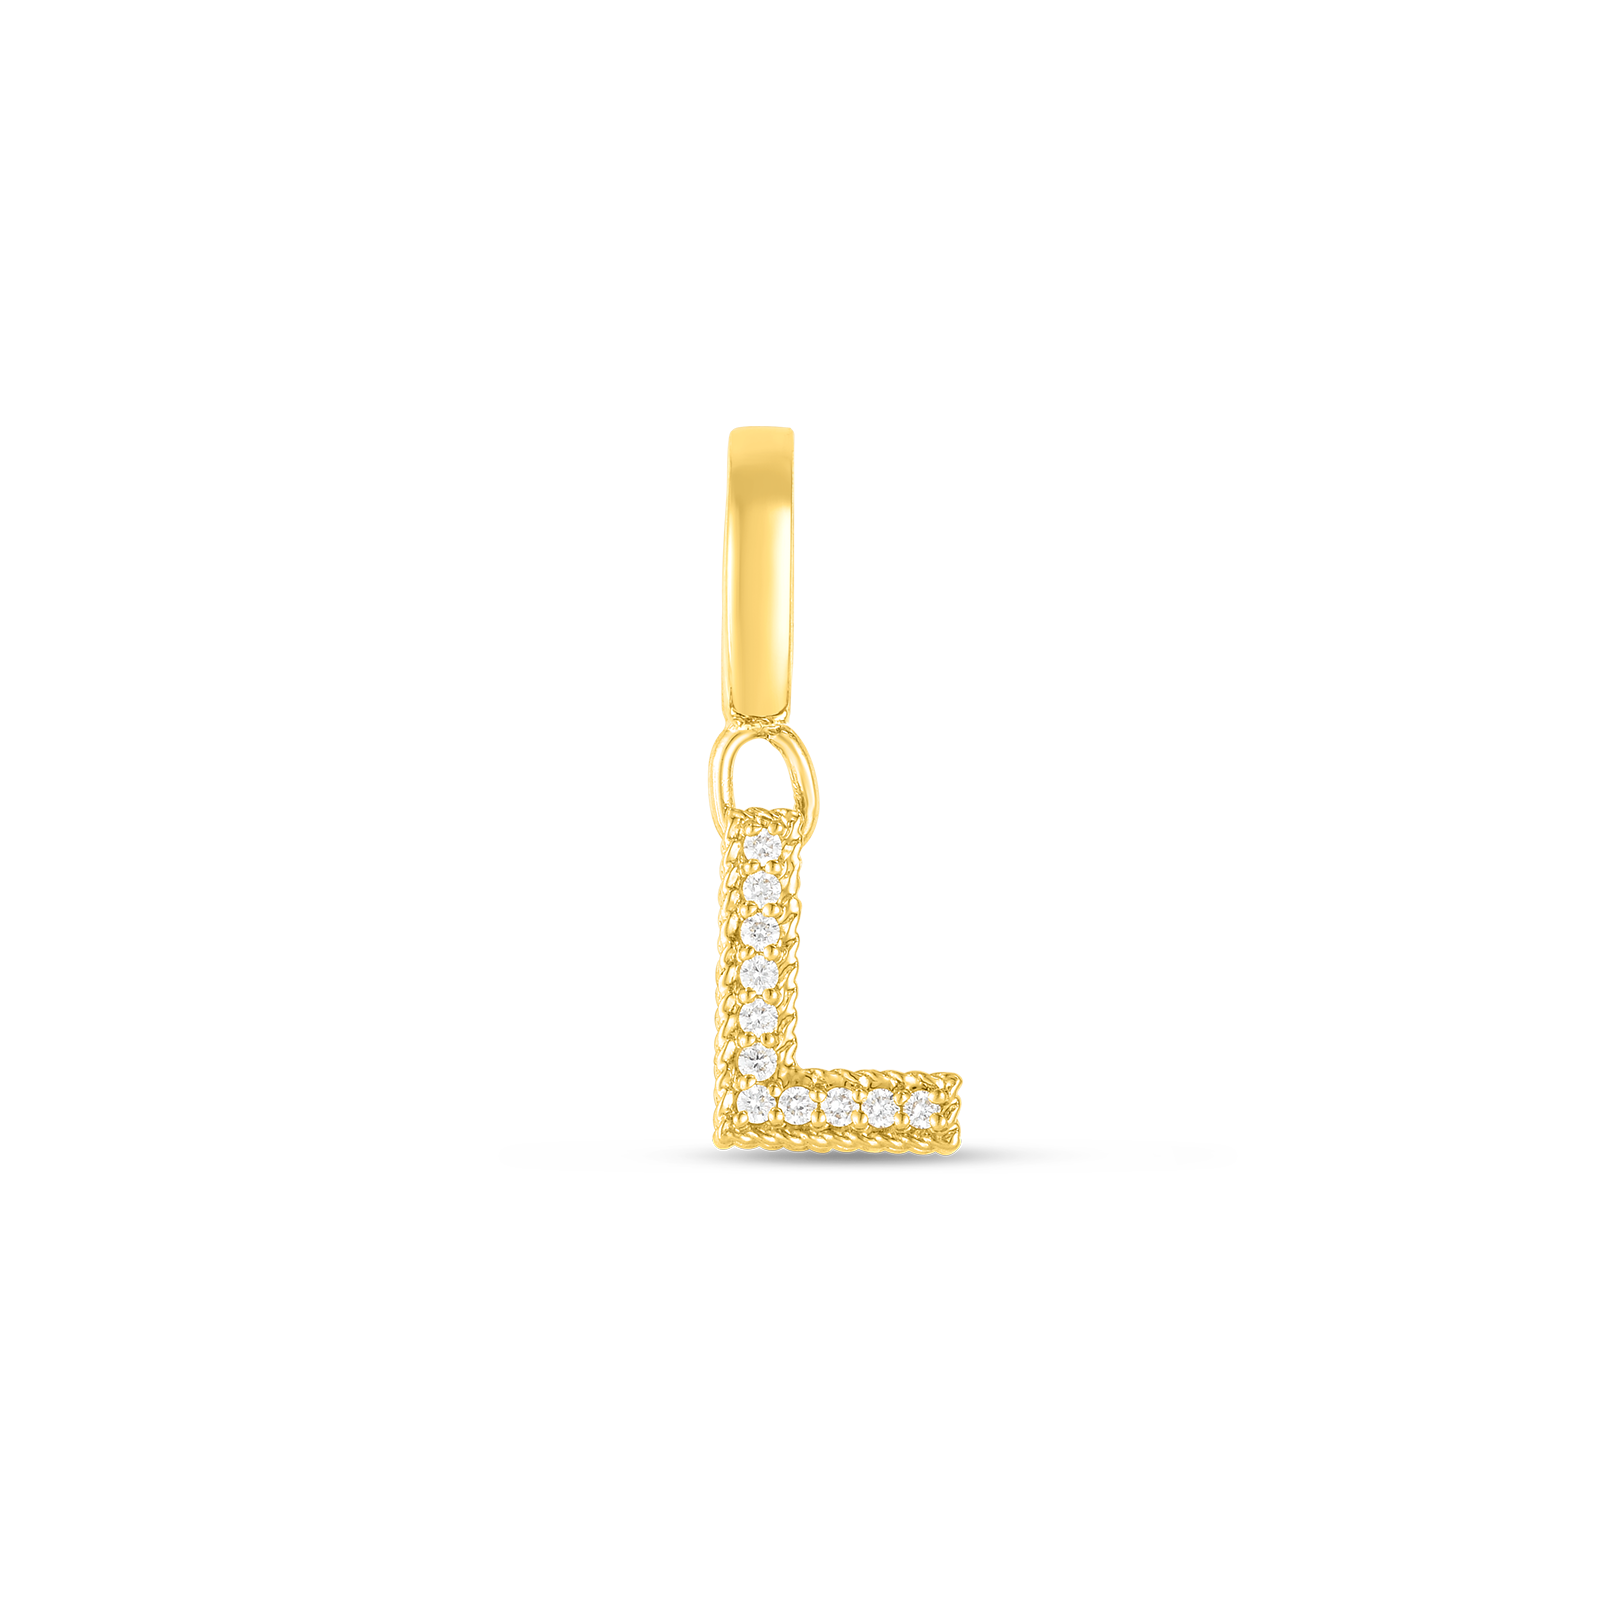 18k Gold & Diamond Princess Letter 'L' Charm